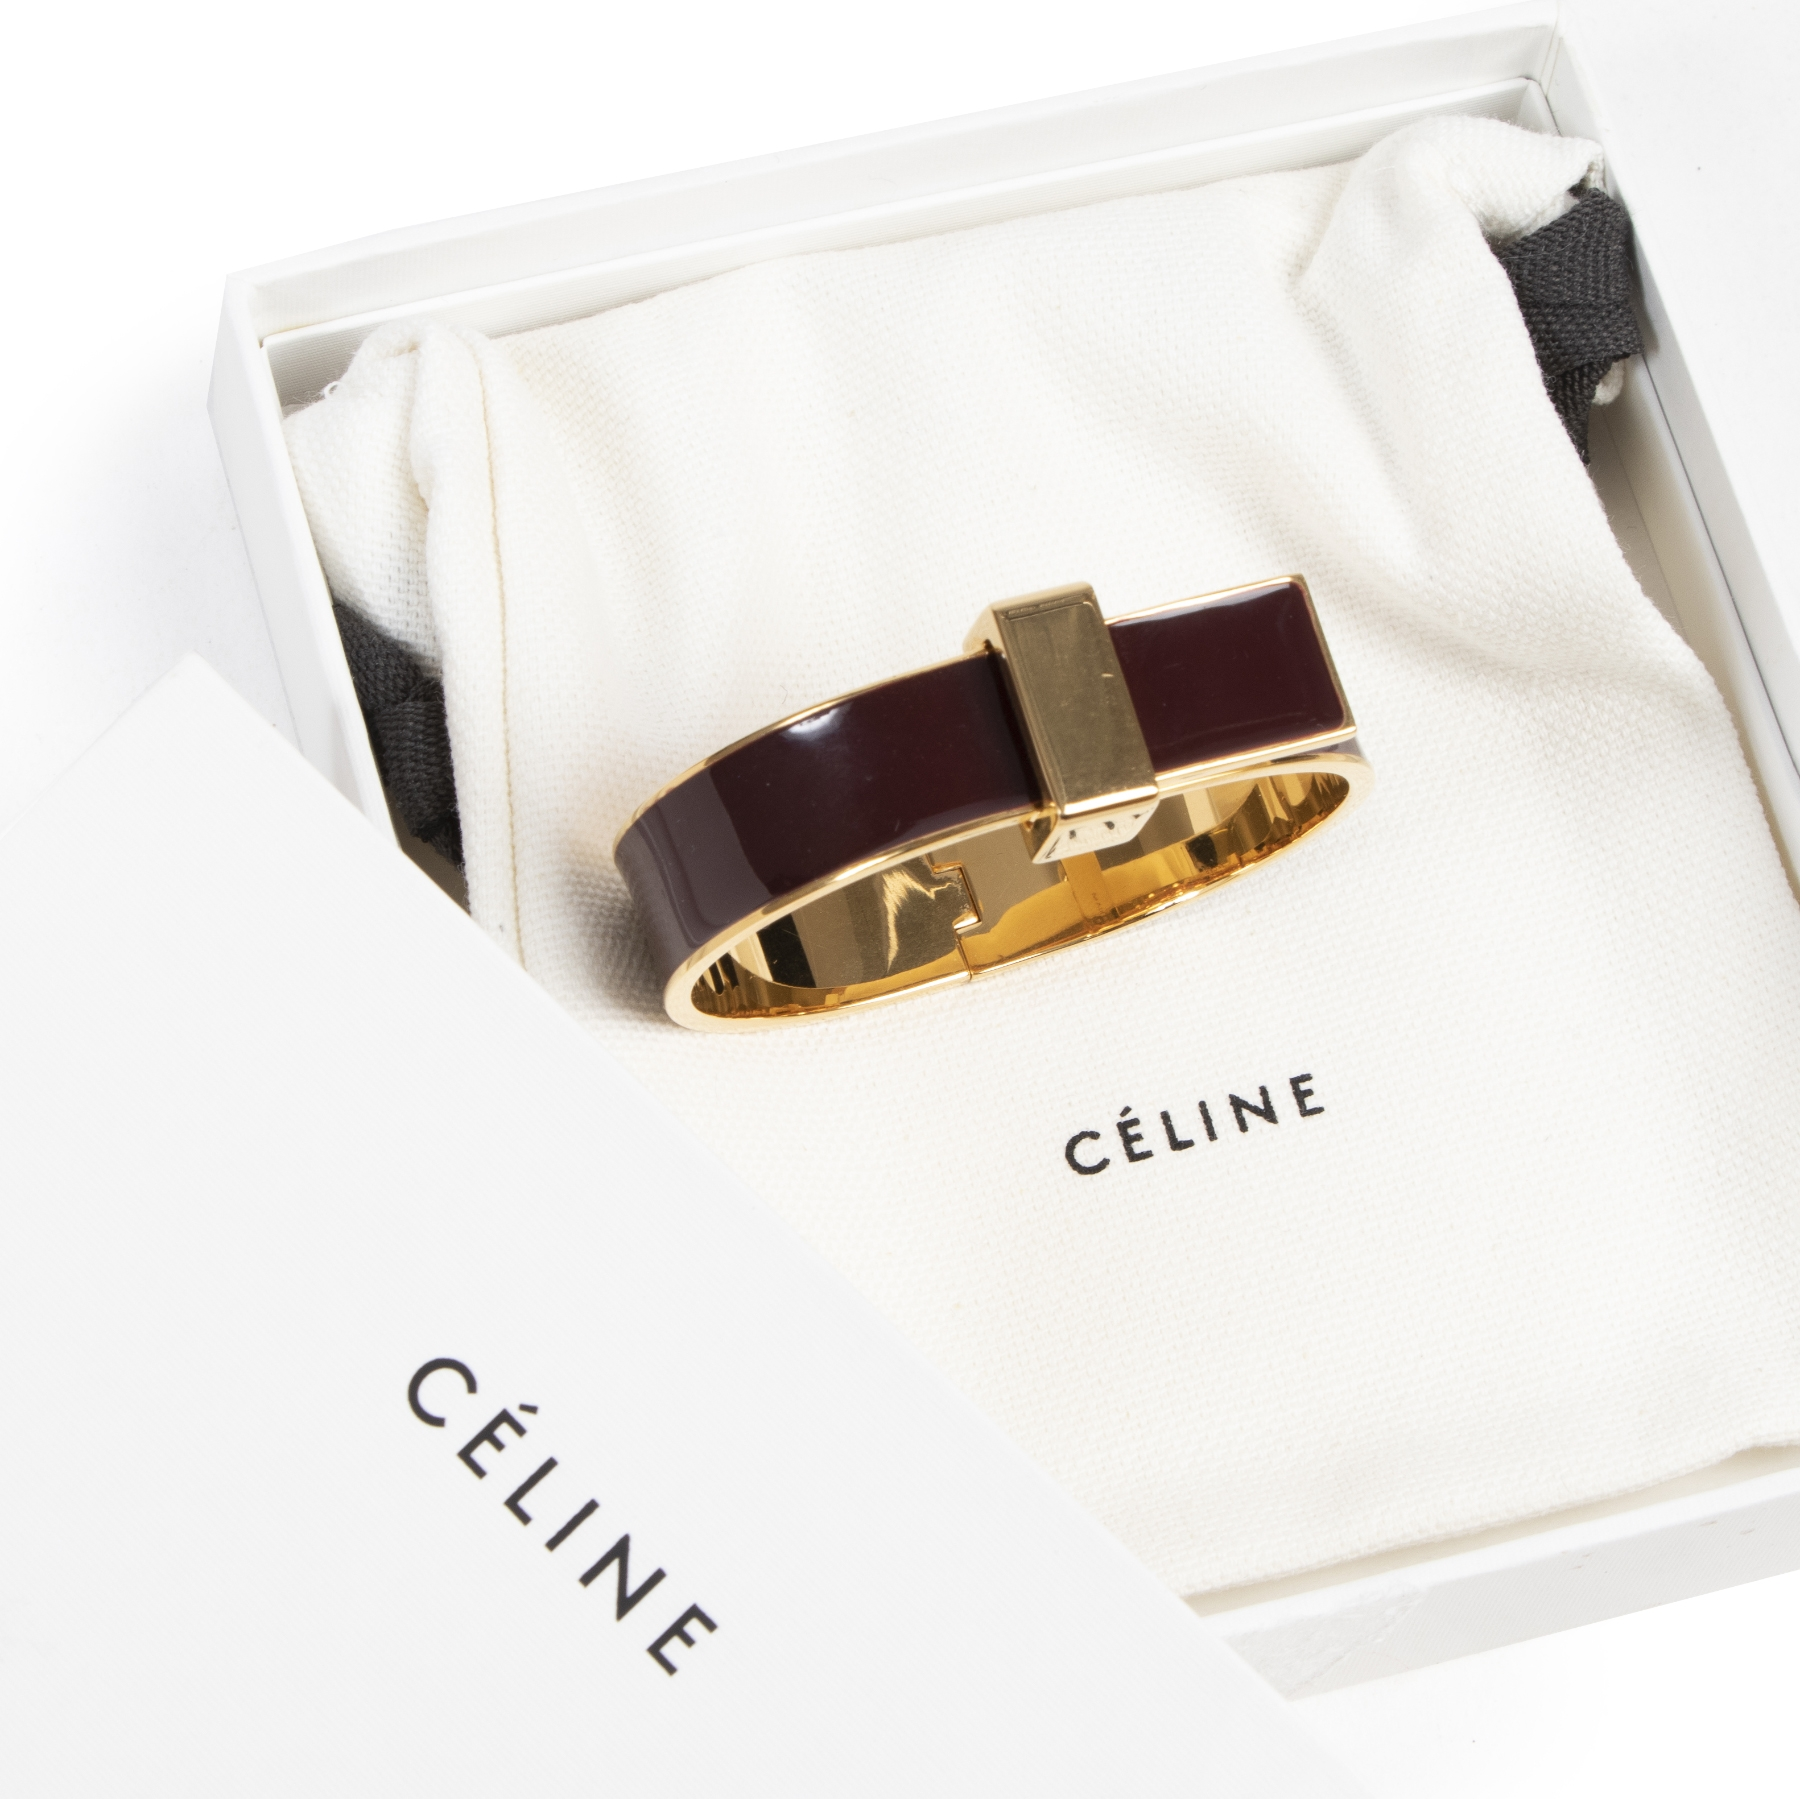 Authentic secondhand Céline Brown Enamelled Bracelet - Size Medium designer accessories fashion luxury vintage webshop safe secure online shopping